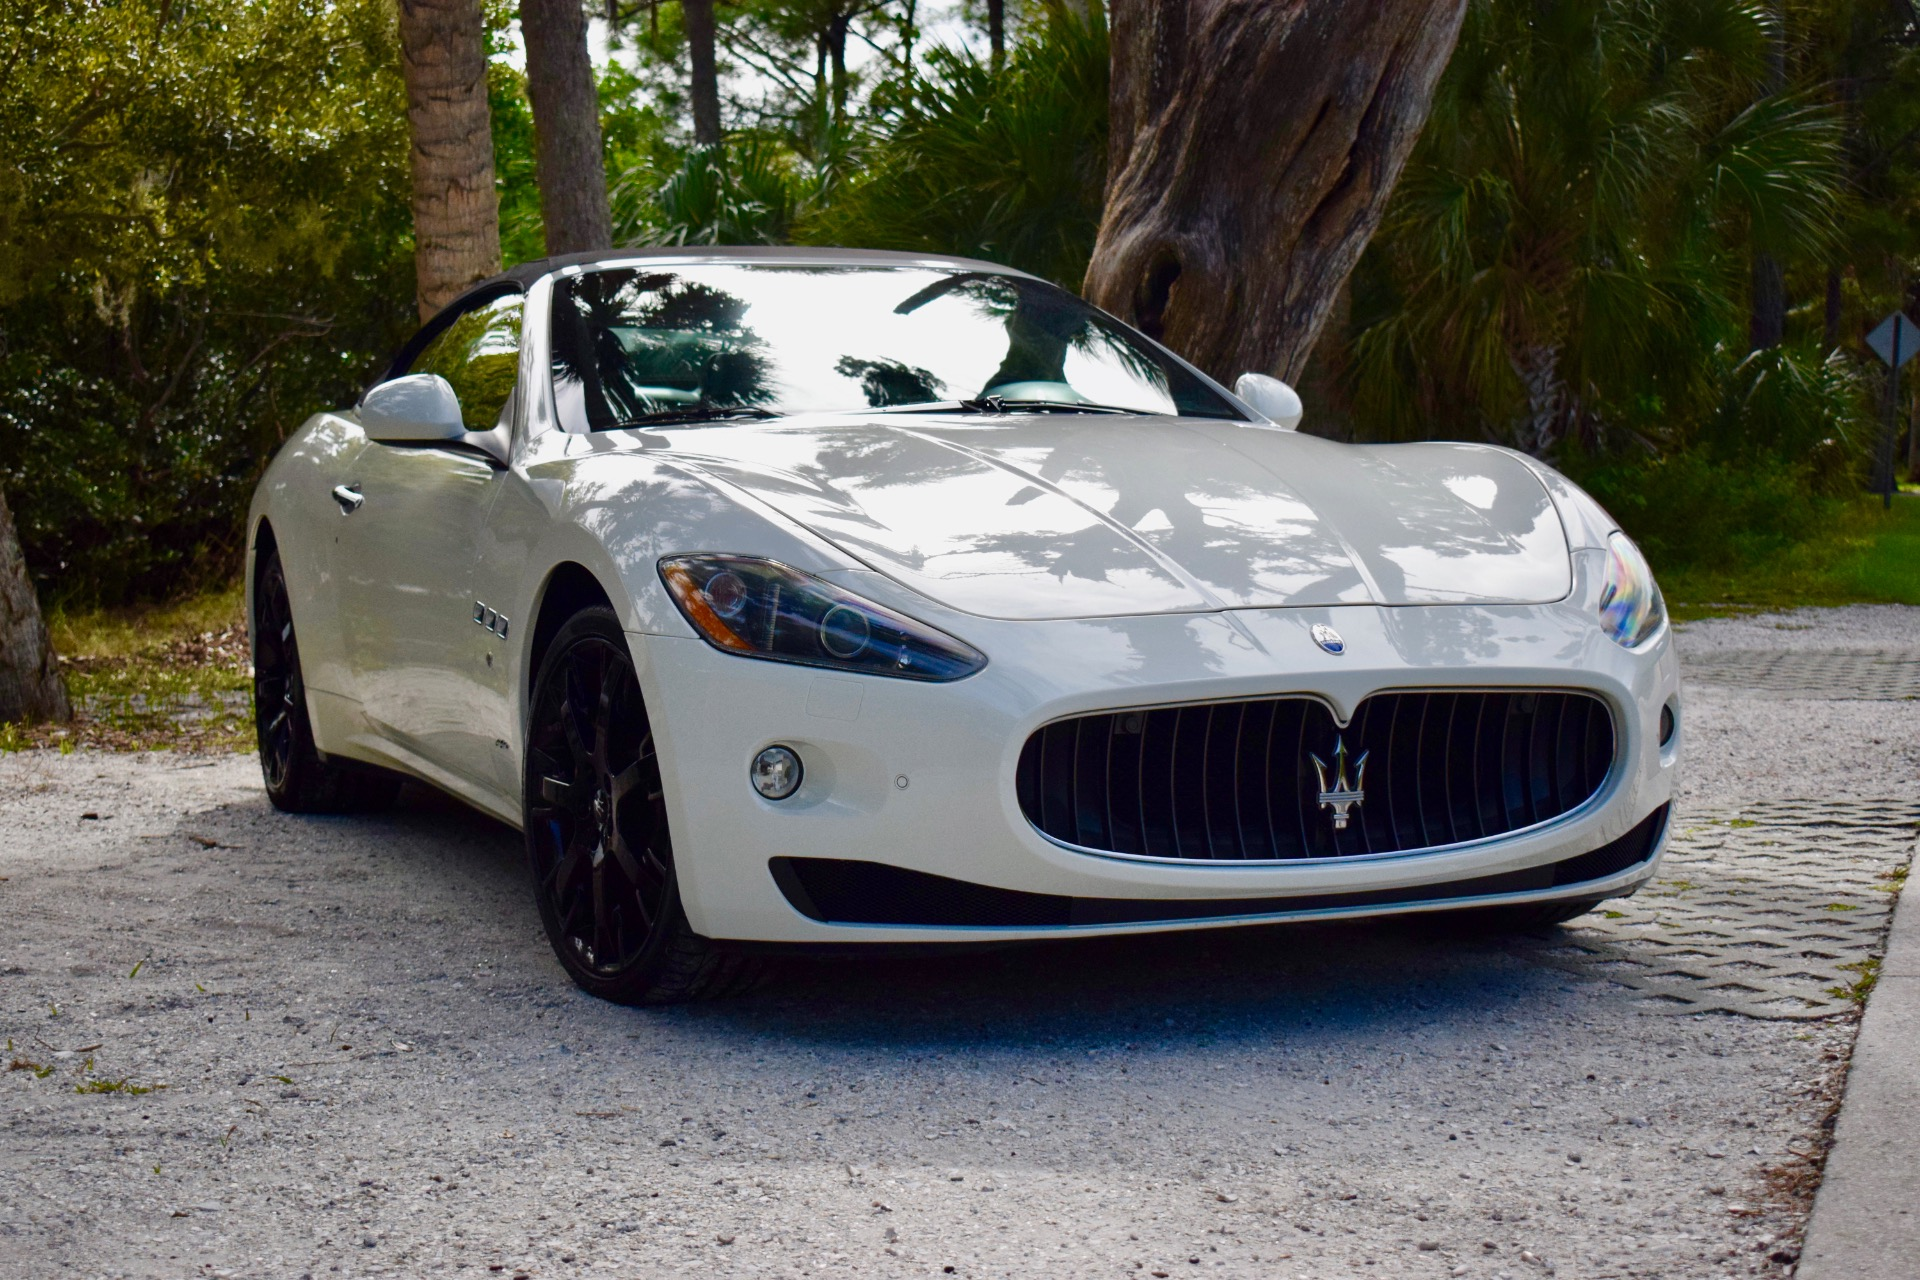 Used 2011 Maserati GranTurismo Convertible 2D for sale Sold at Track and Field Motors in Safety Harbor FL 34695 1